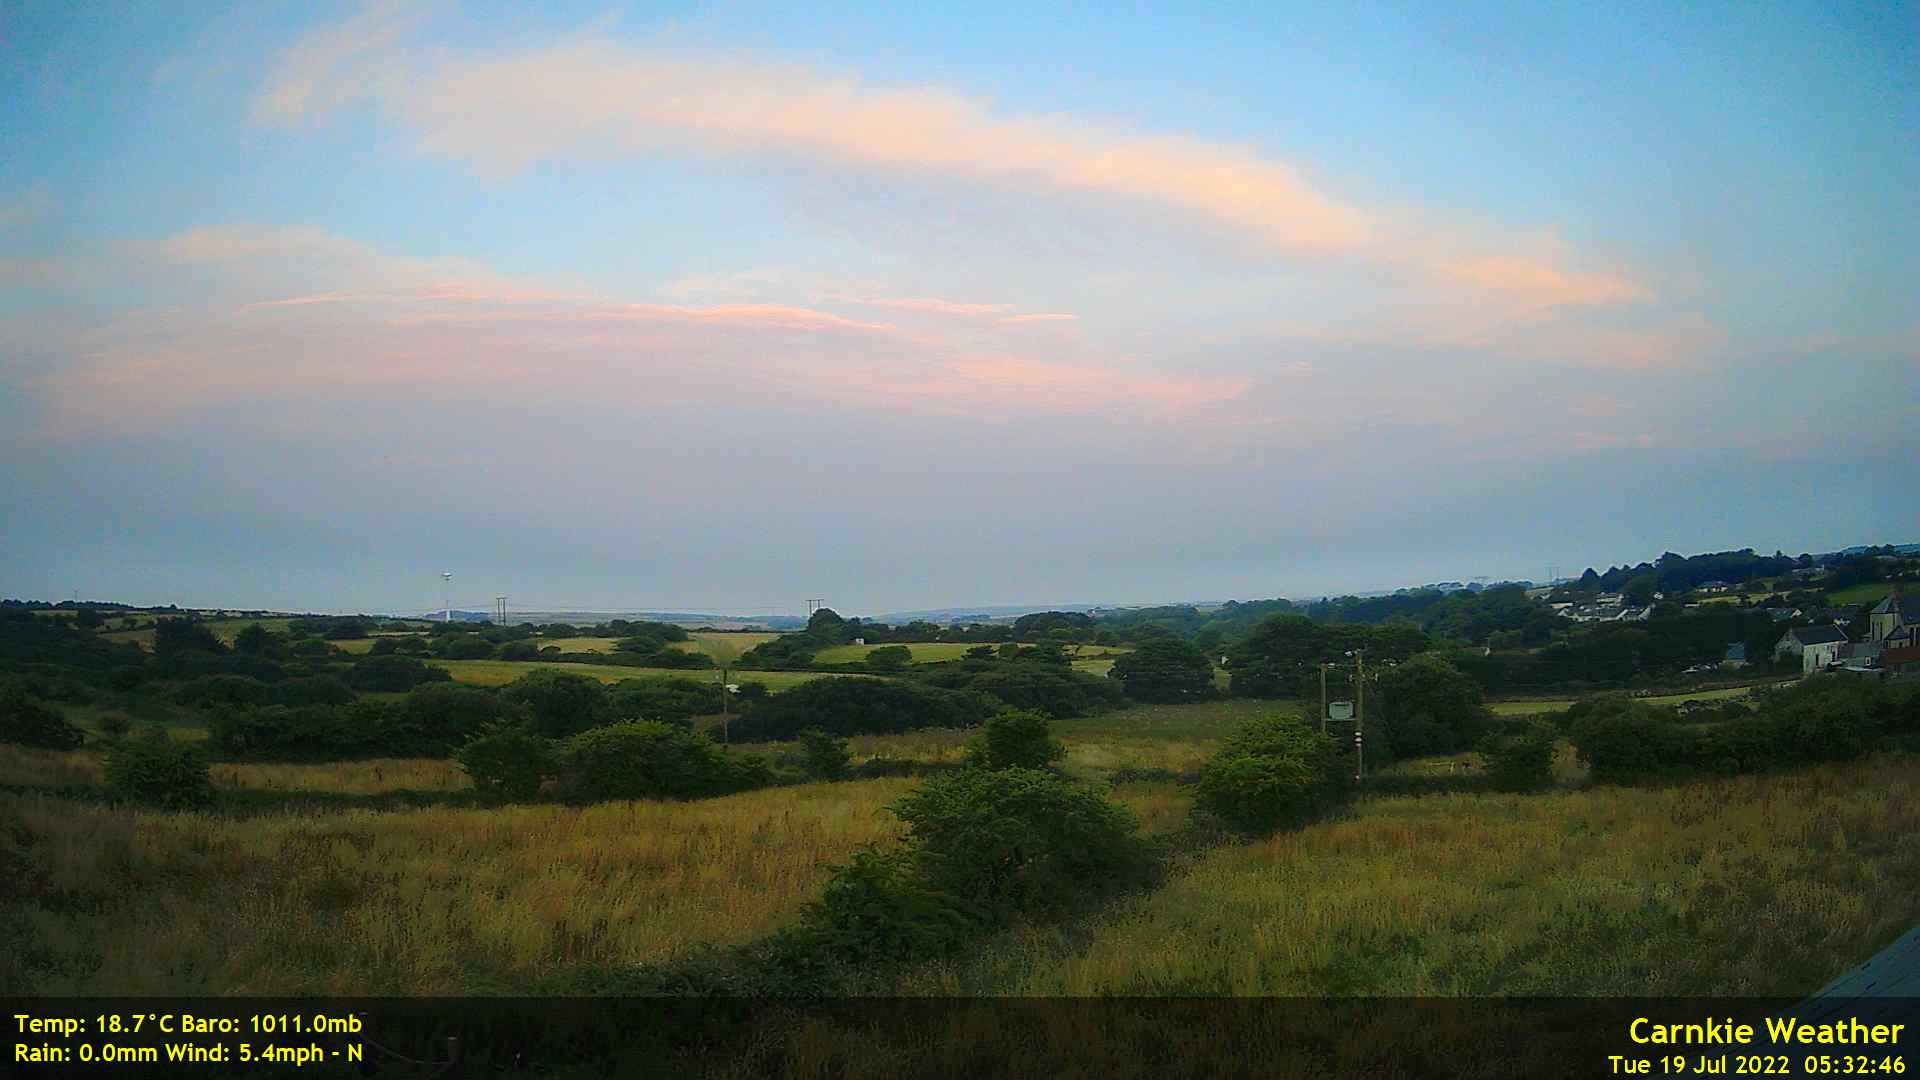 Carnkie Weather Webcam